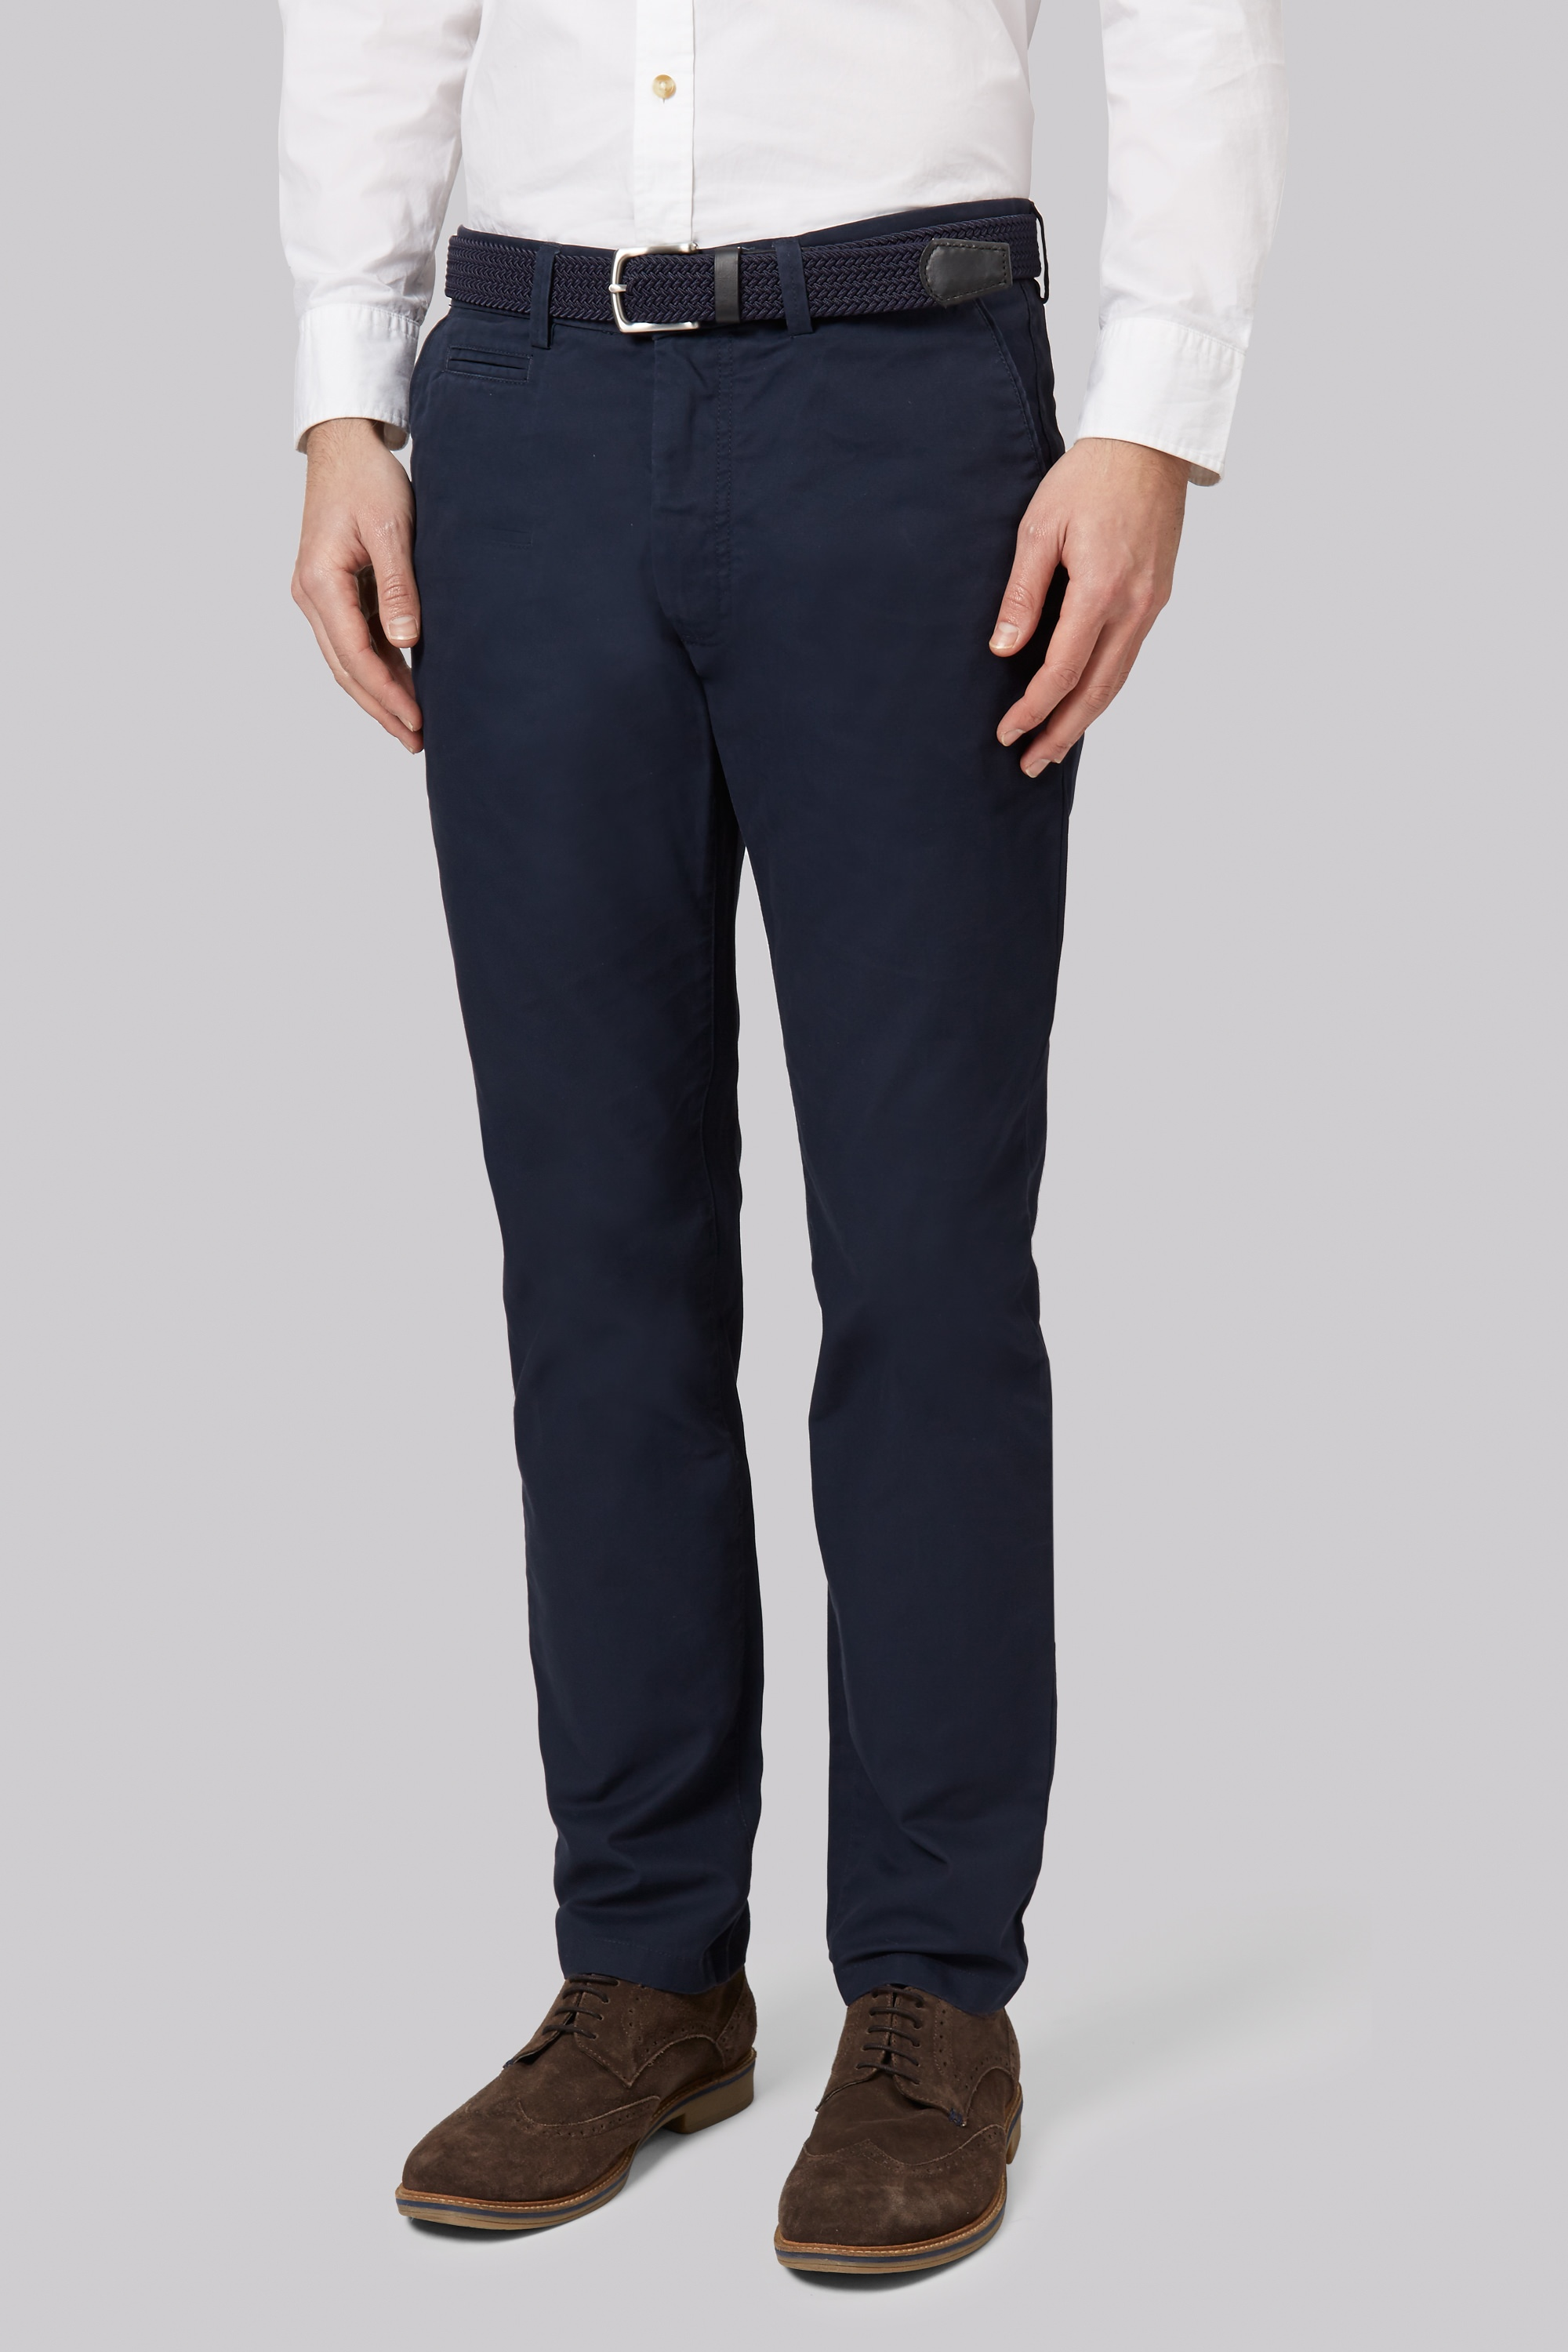 Moss Bros Moss 1851 Tailored Fit Navy Chino